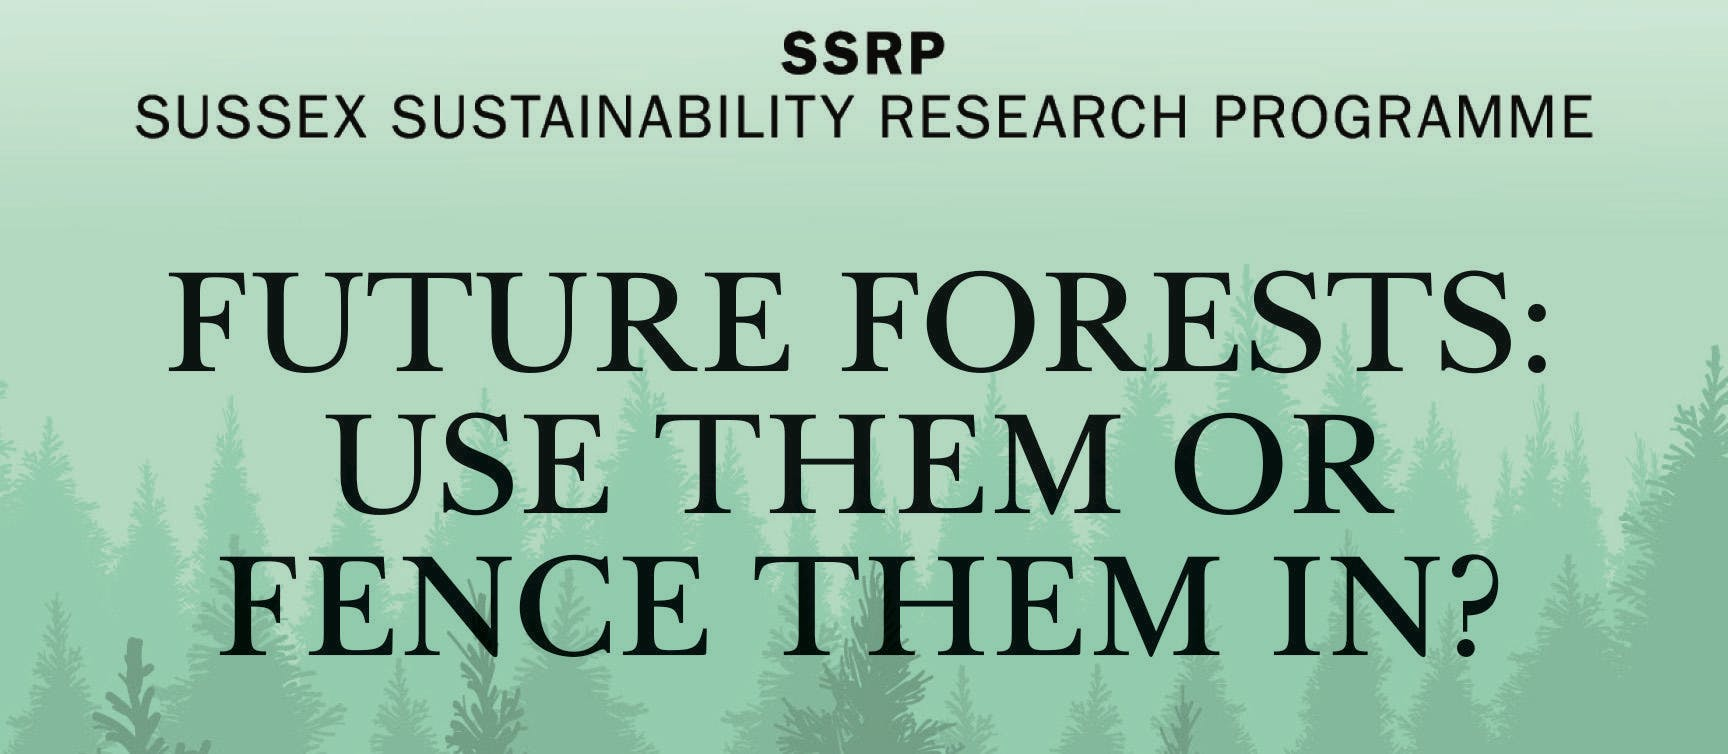 Future Forests: Use them or fence them in.